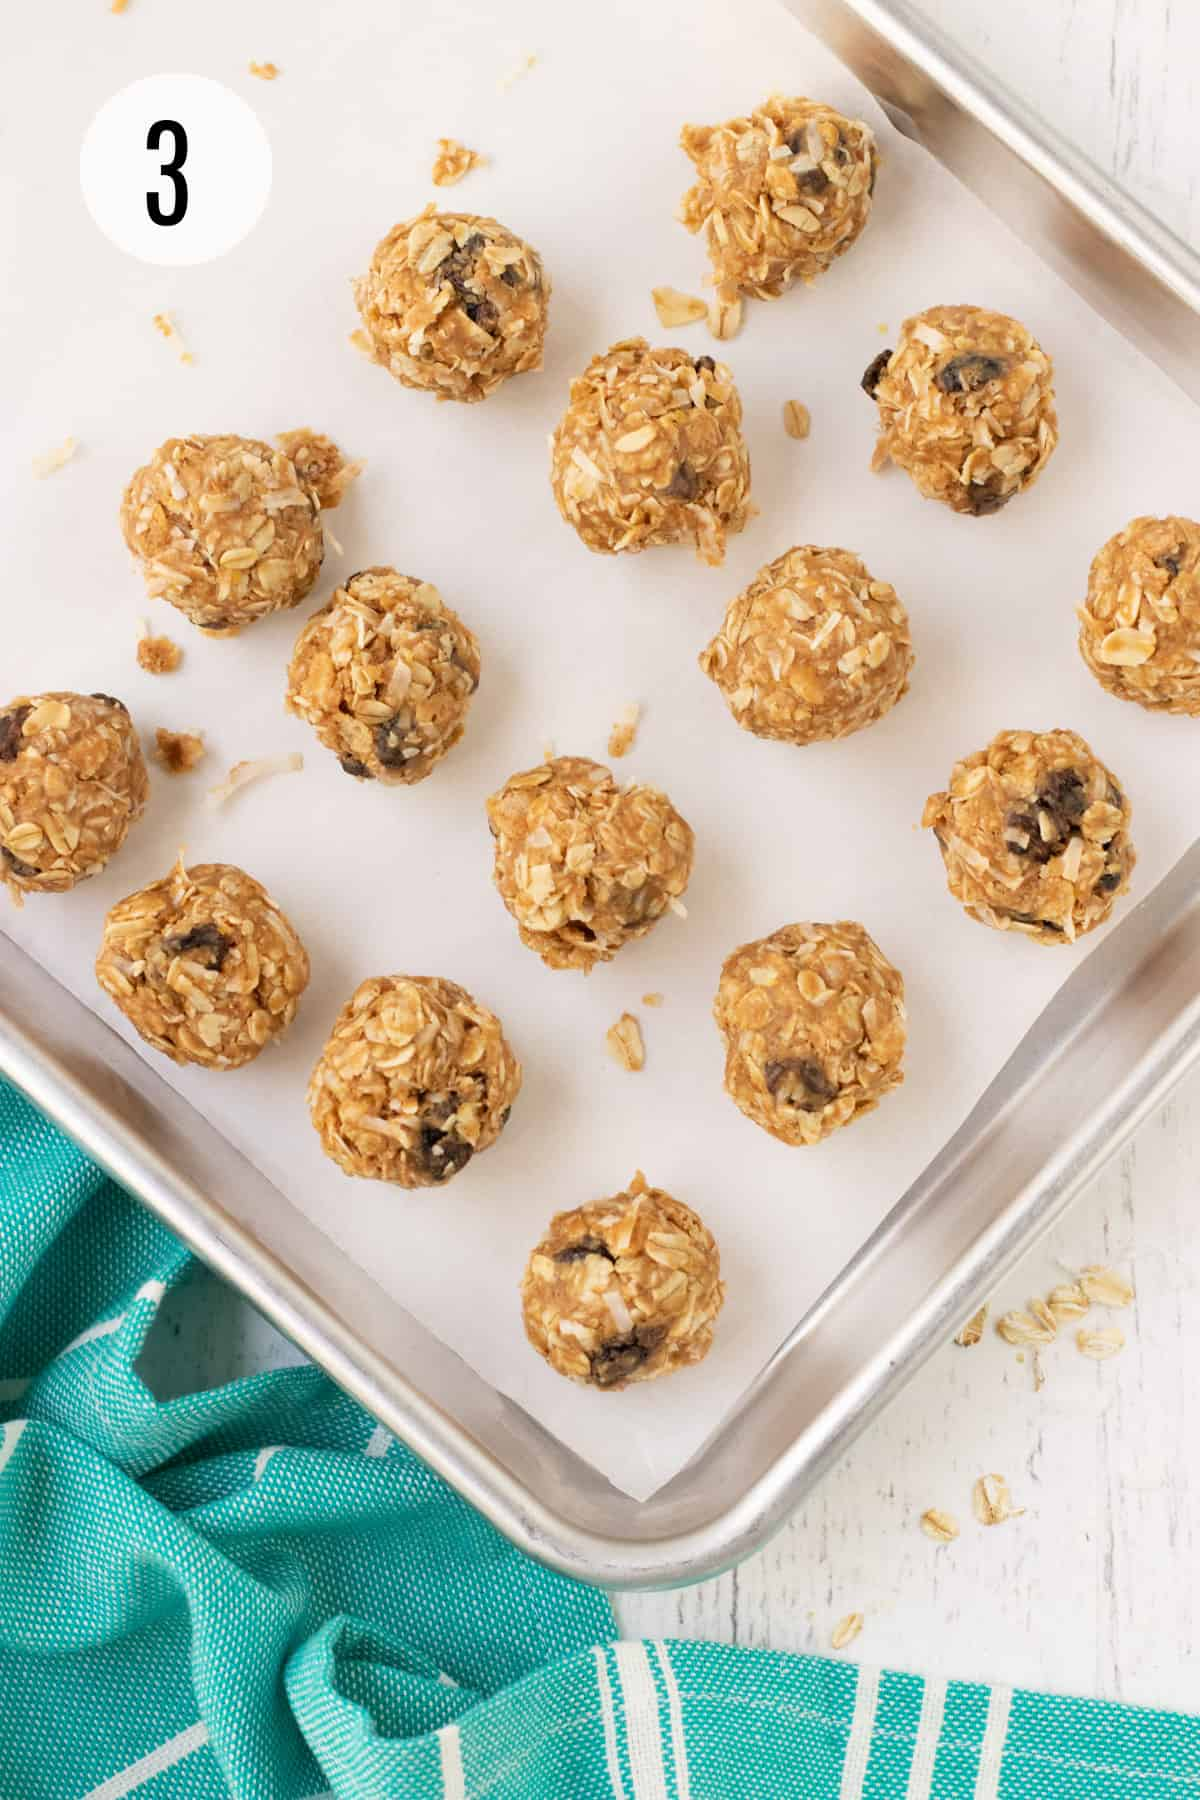 Silver baking tray lined with parchment paper and peanut butter oatmeal raisin protein balls and aqua linen in lower left corner.